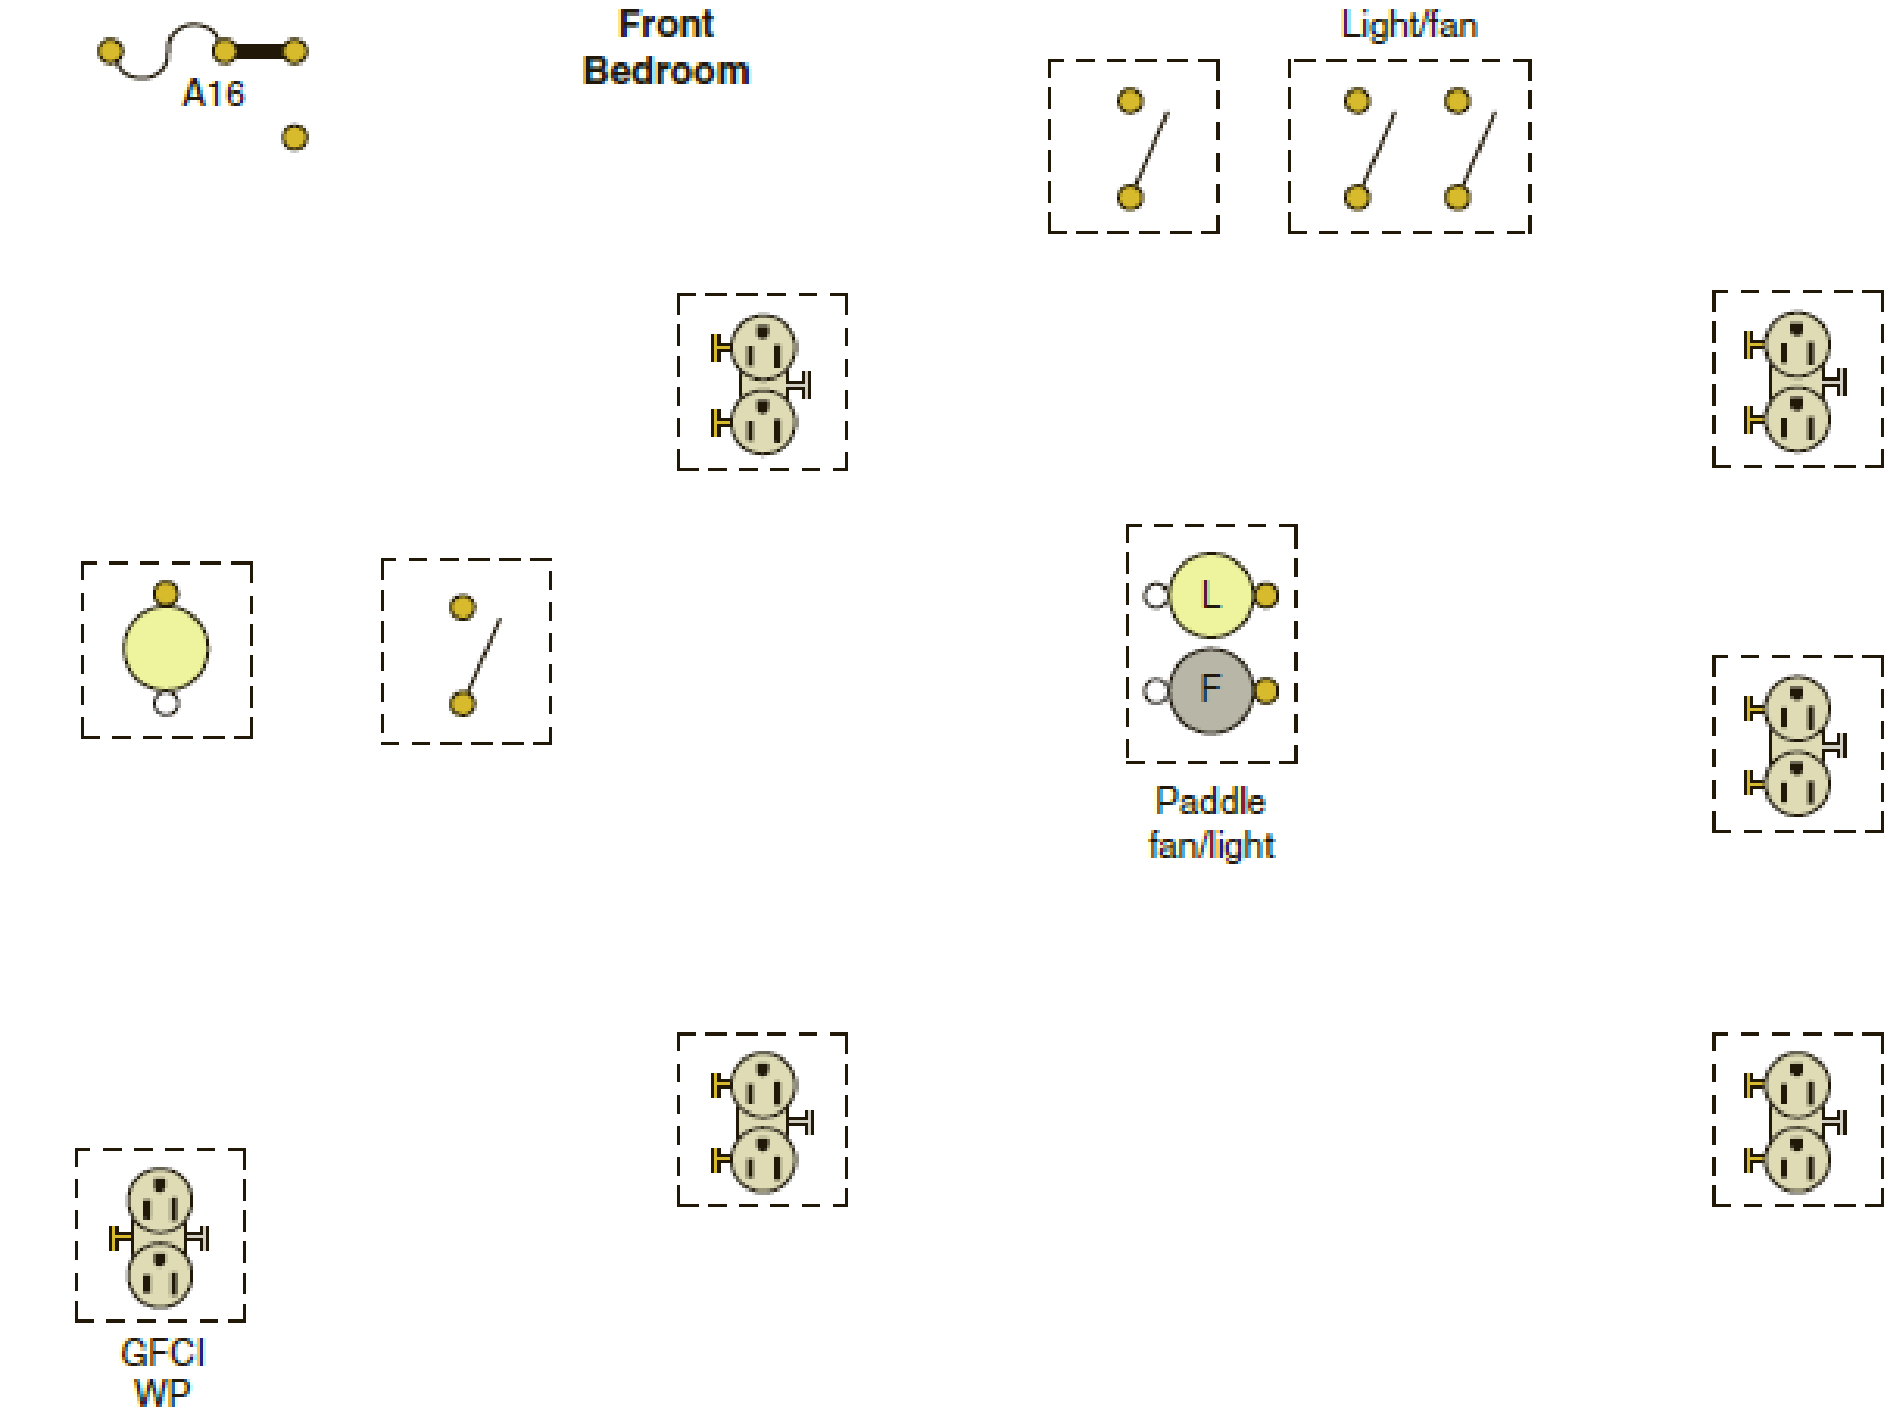 afci circuit bedroom wiring diagram the following is a layout of the lighting circuit for the front  layout of the lighting circuit